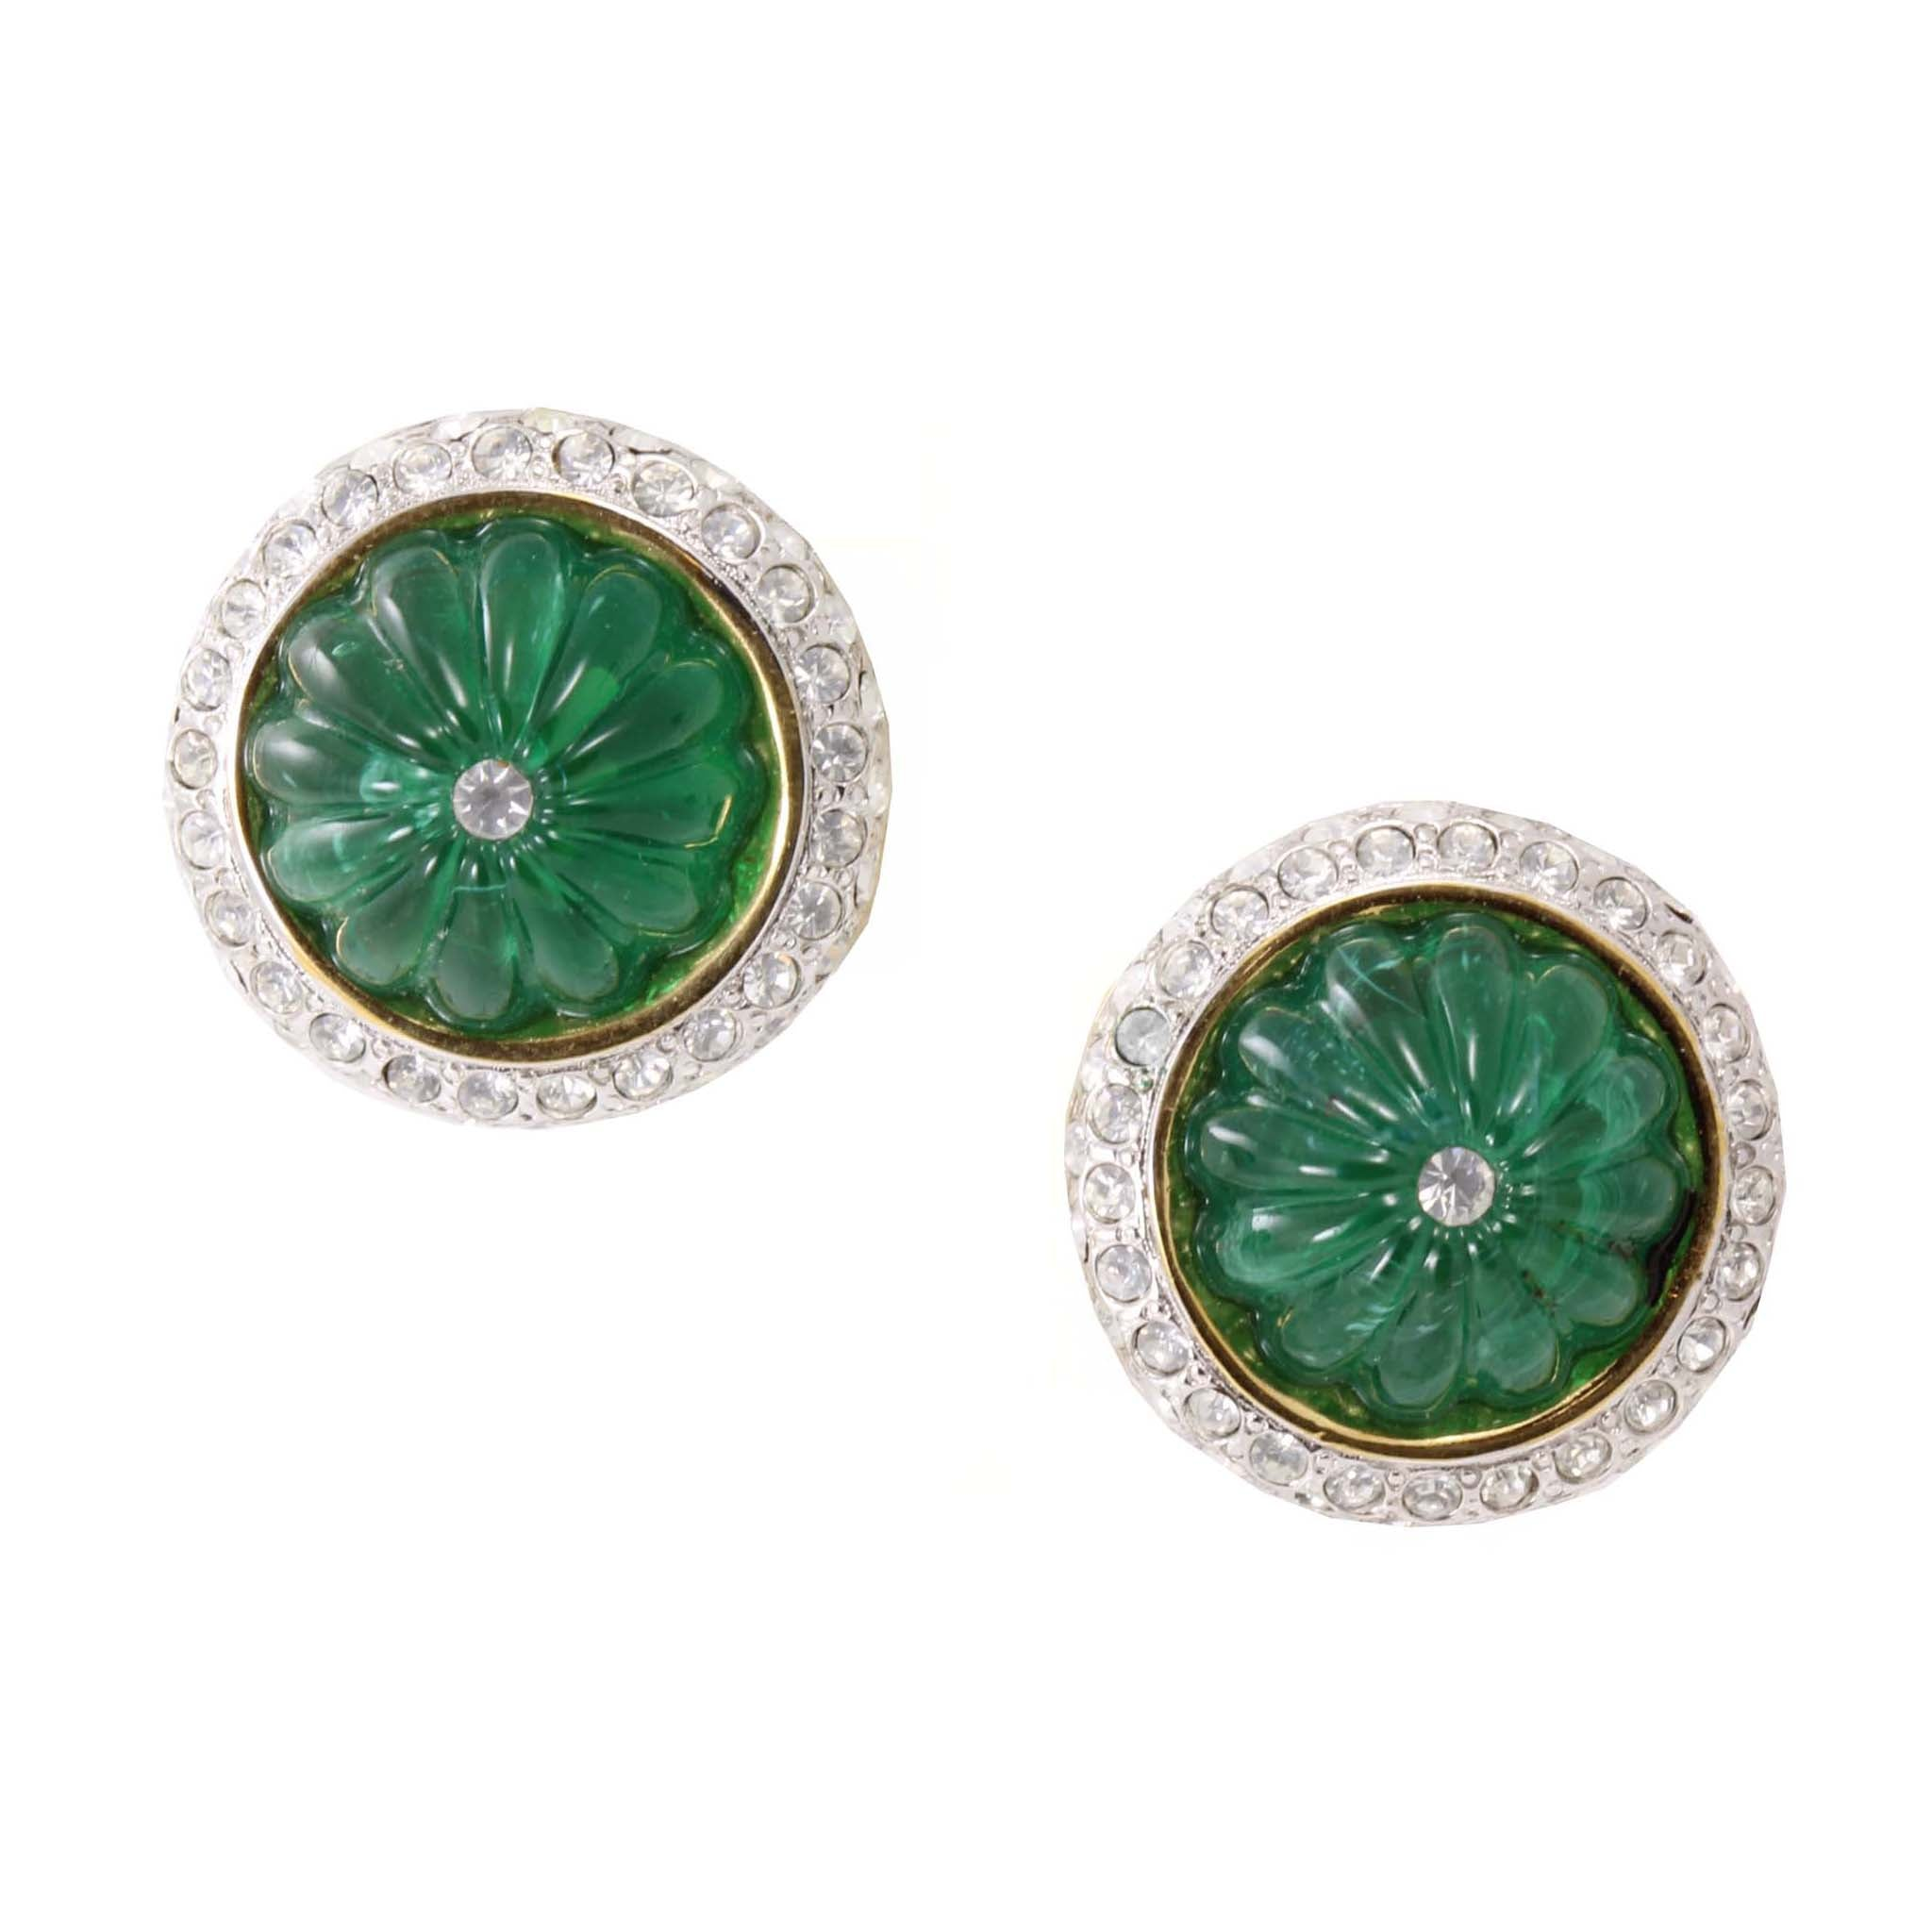 Emerald Green Glass Button Earrings Front